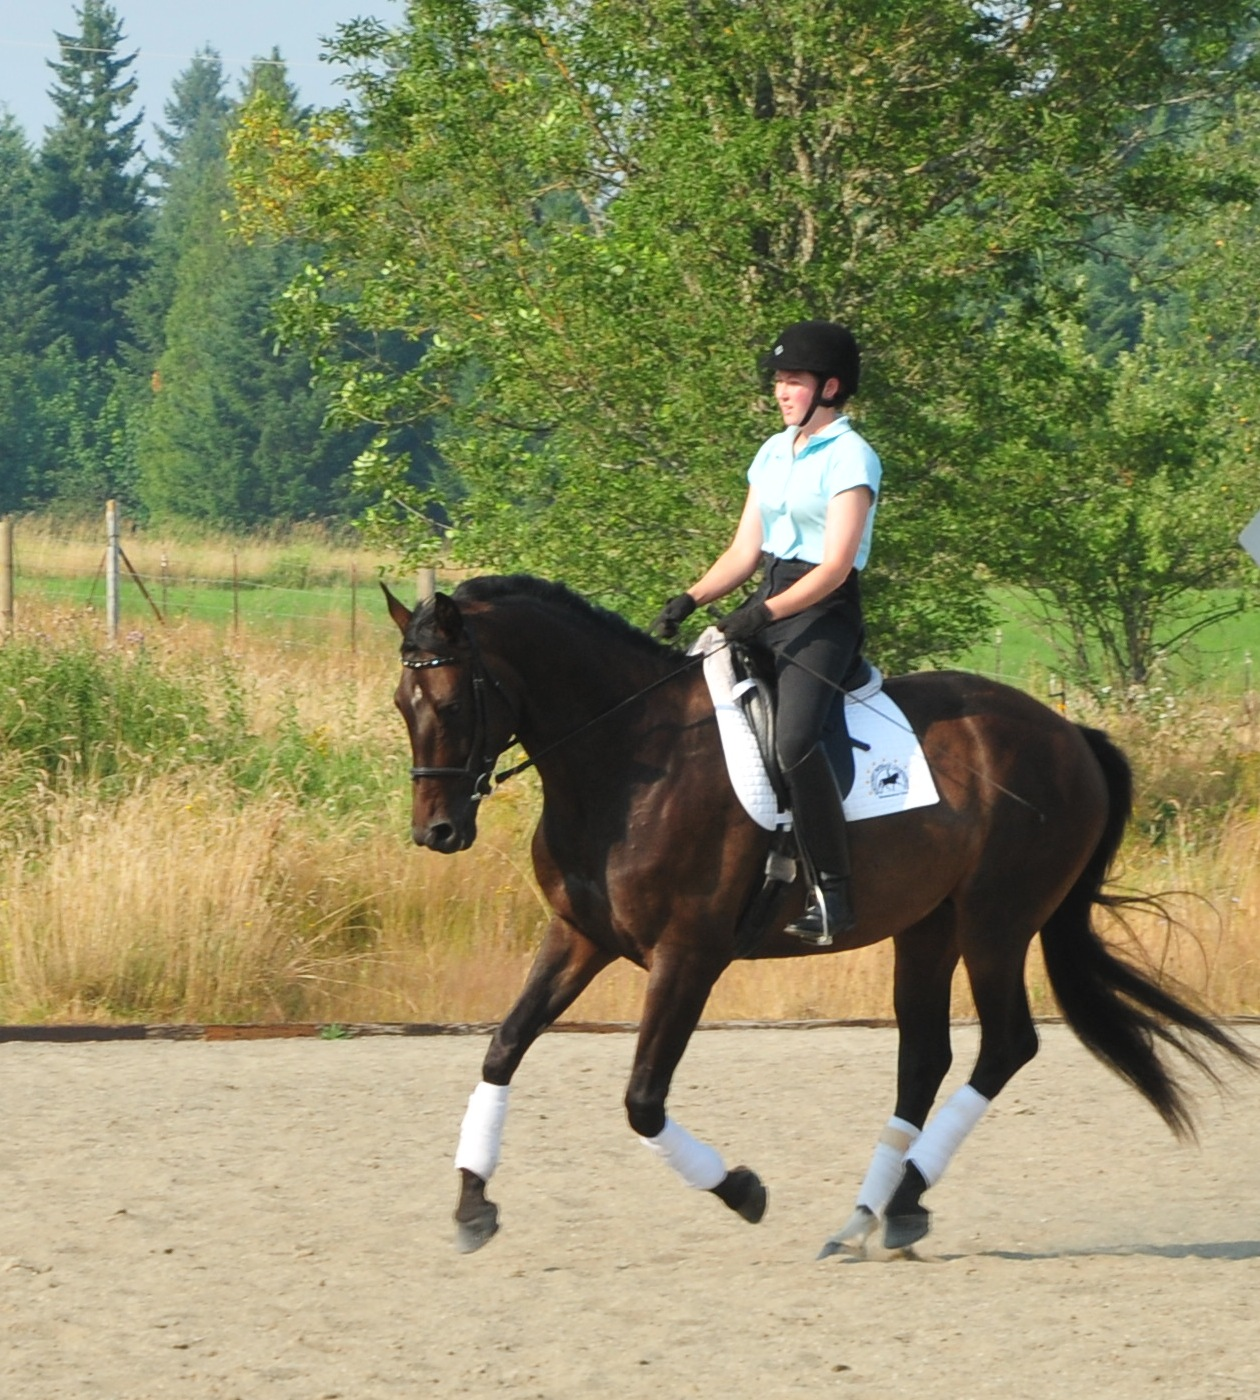 """A solid, balanced position and correct basics can create quite a happy picture. This horse pictured above is soft through his back with a relaxed expression, swinging tail, and is a joy to ride!"" - Allison"